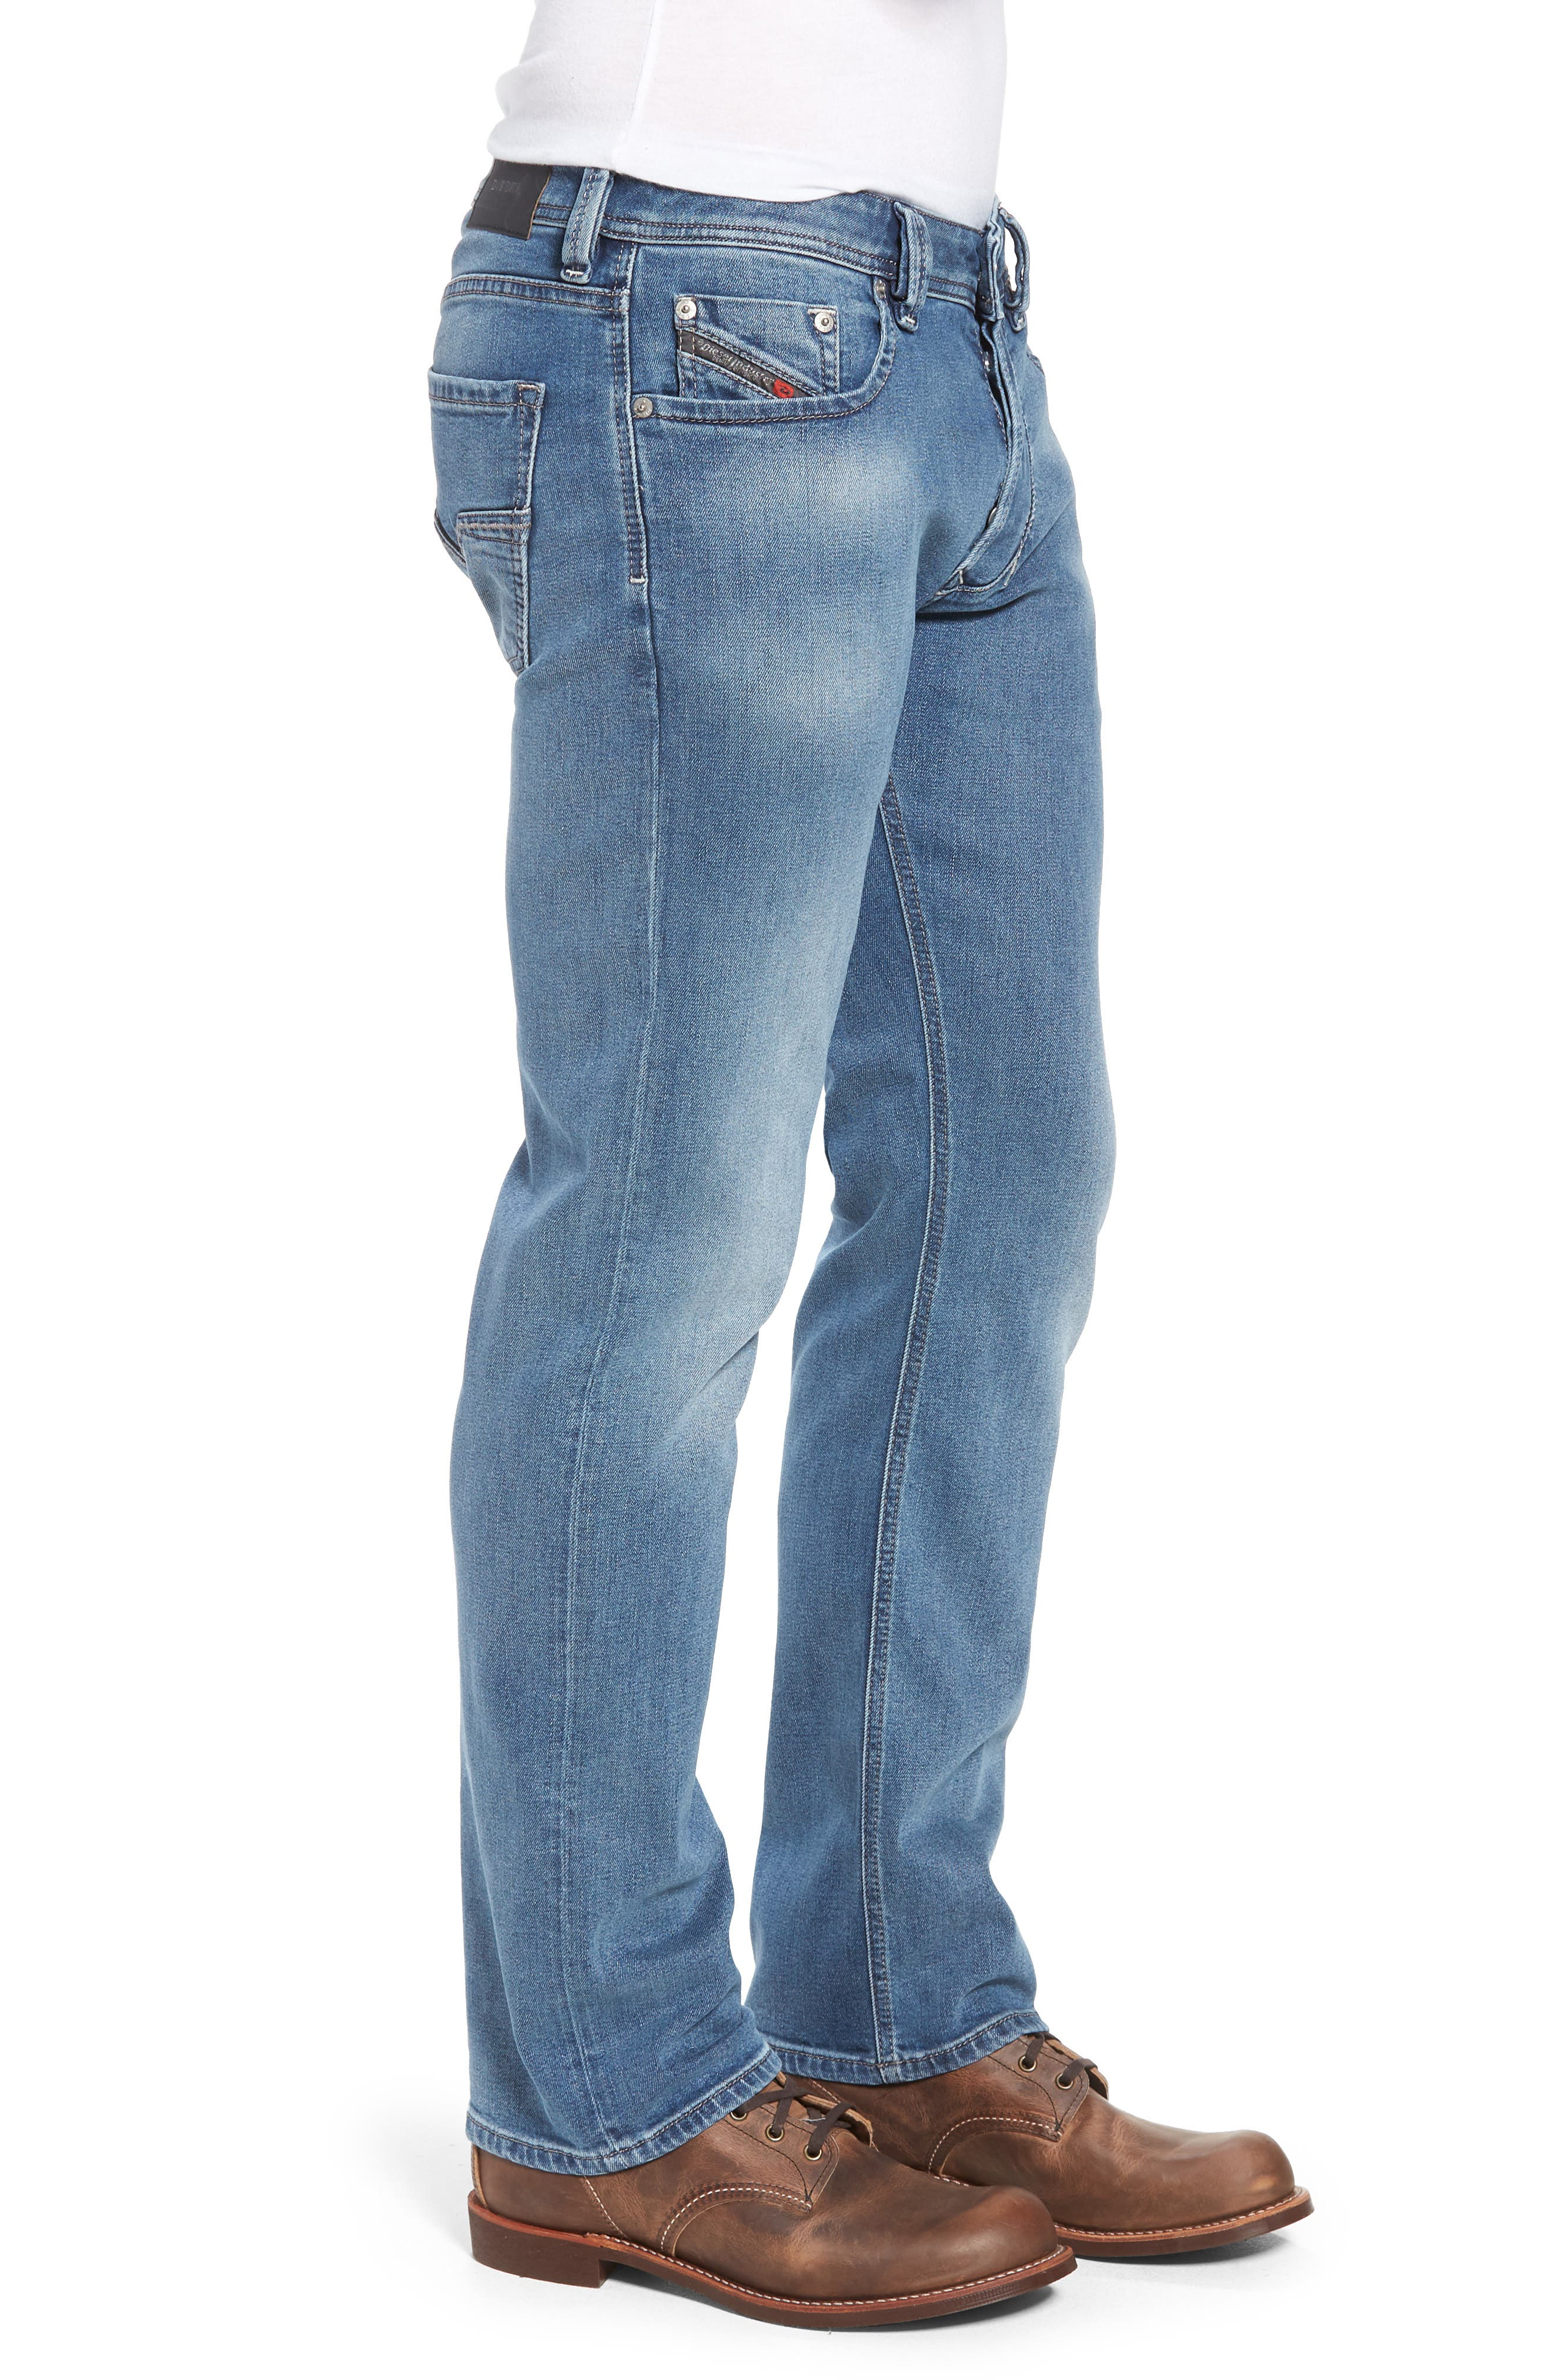 Larkee Relaxed Fit Jeans,                             Alternate thumbnail 3, color,                             084Rb